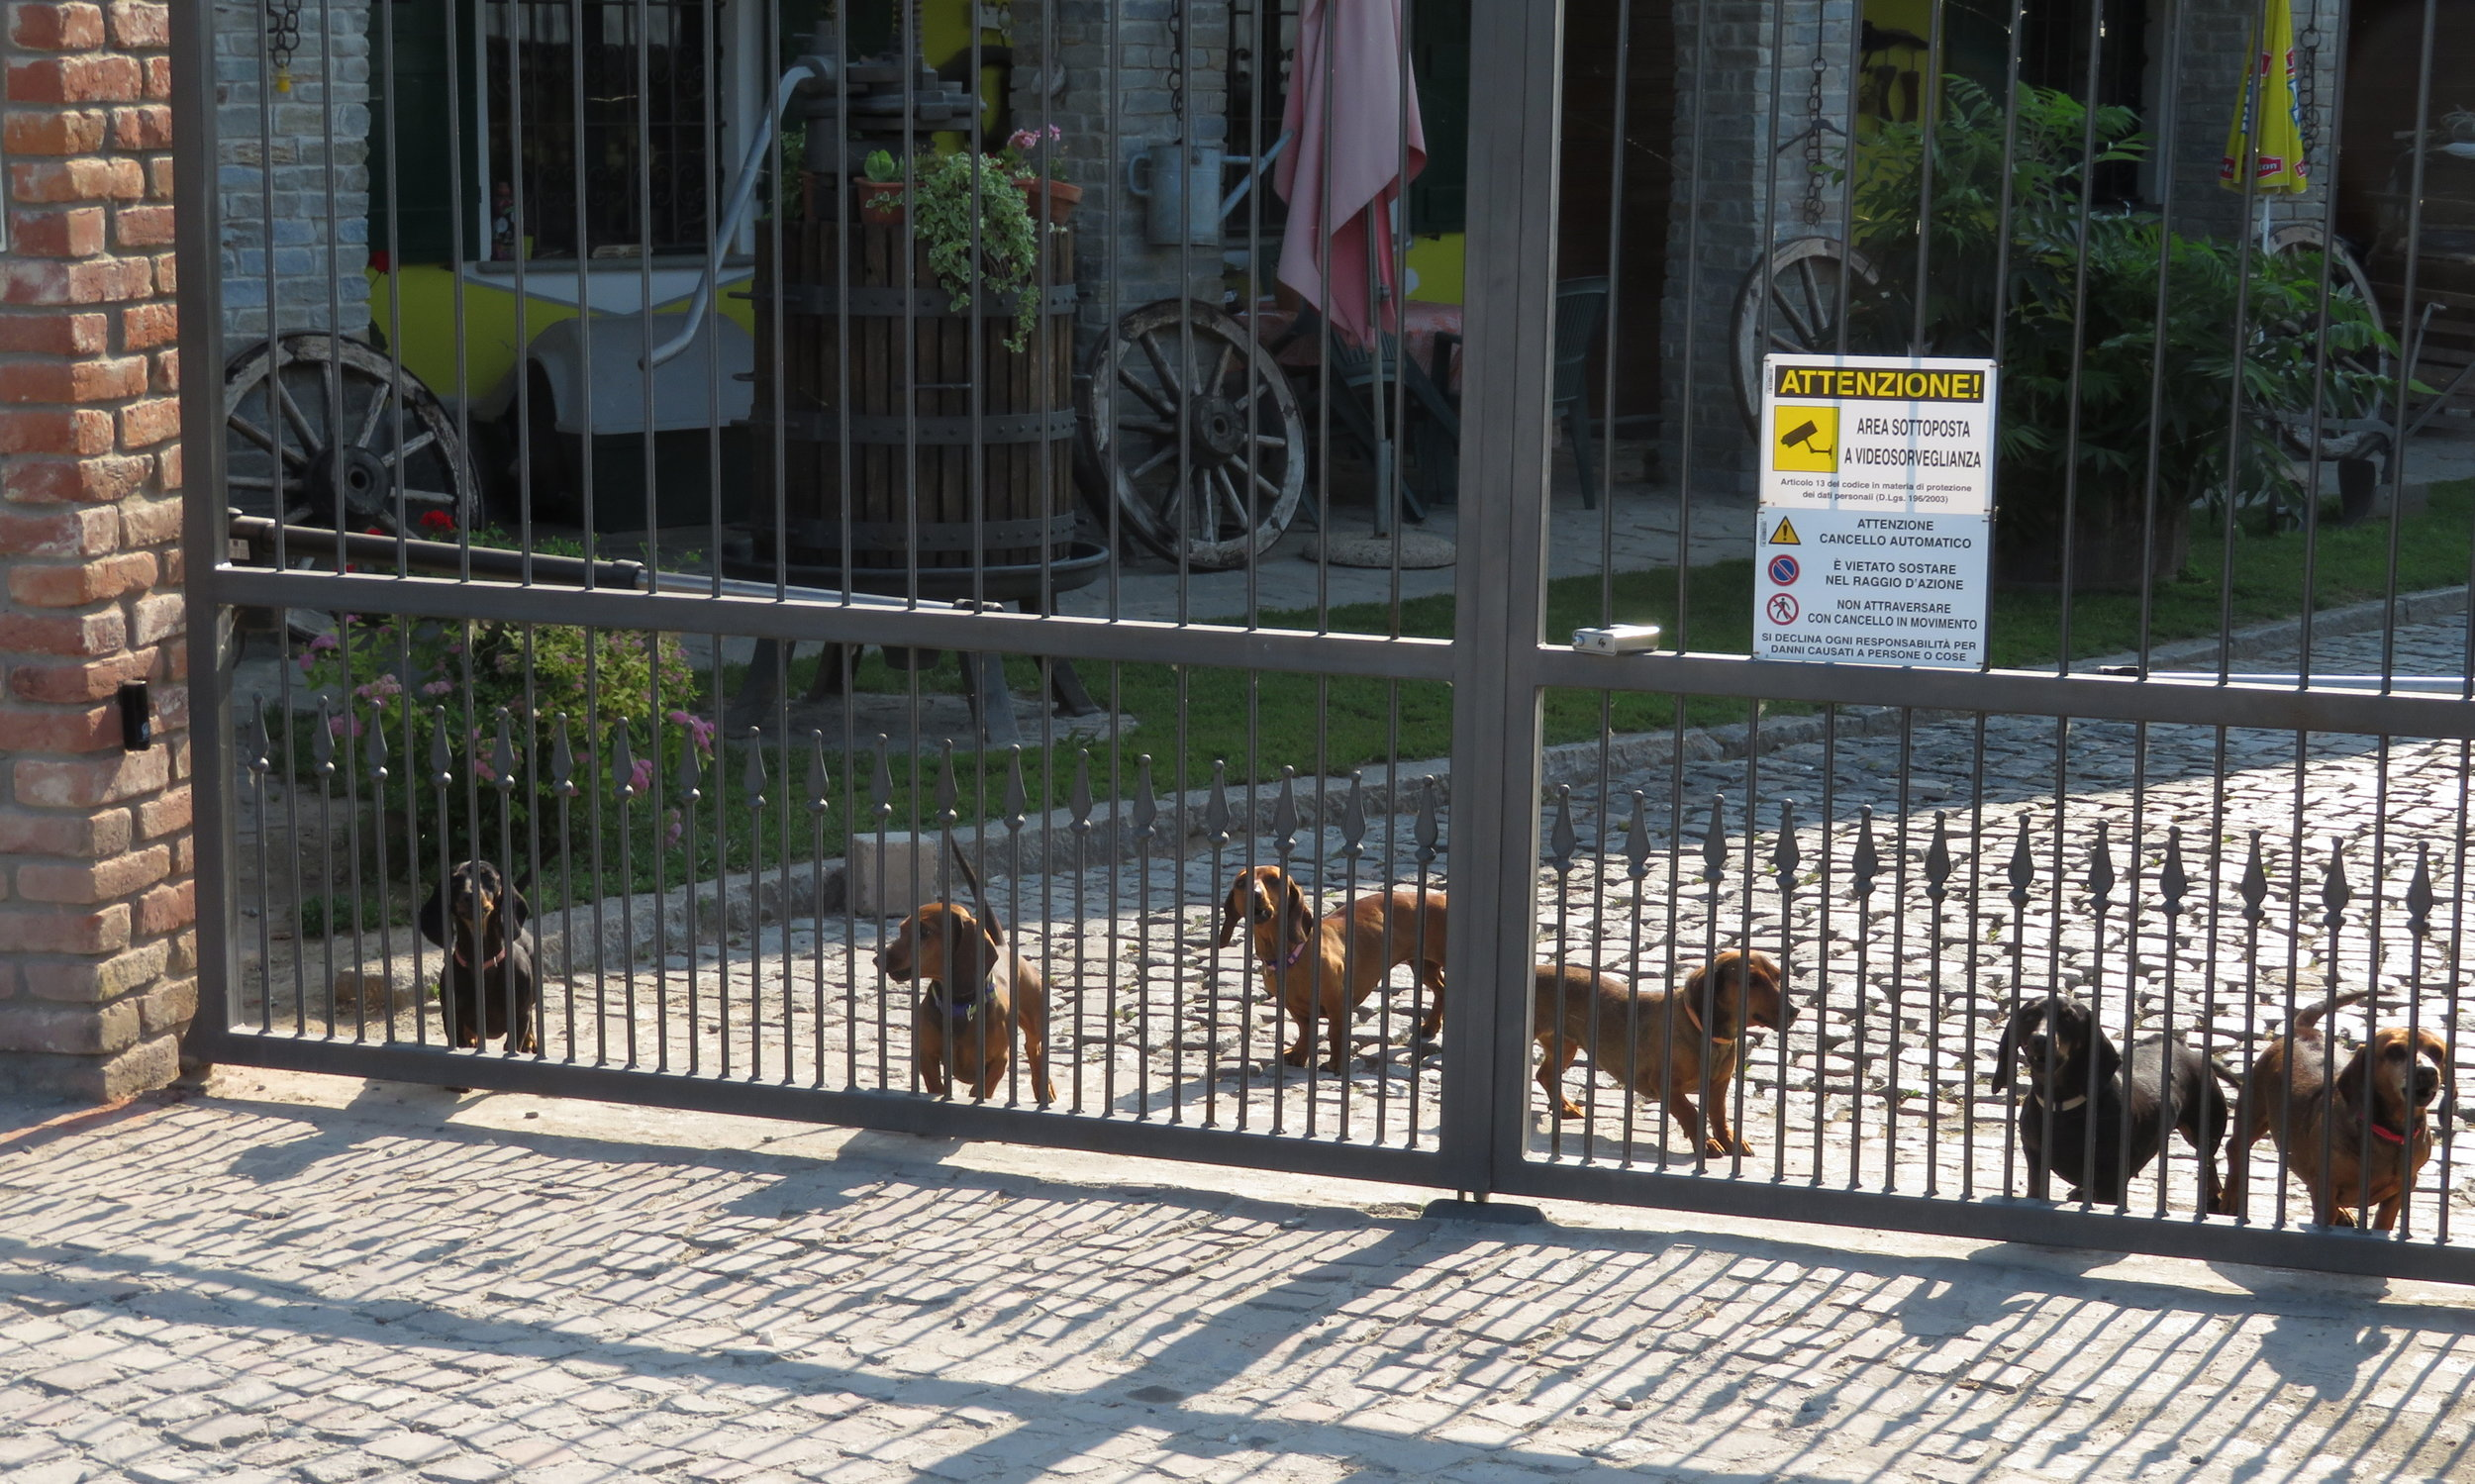 Beware of the dogs! We counted at least a dozen dachsunds yipping, growling and barking at us as we passed. It was hard to take them seriously, but of course, we were on the other side of the fence.